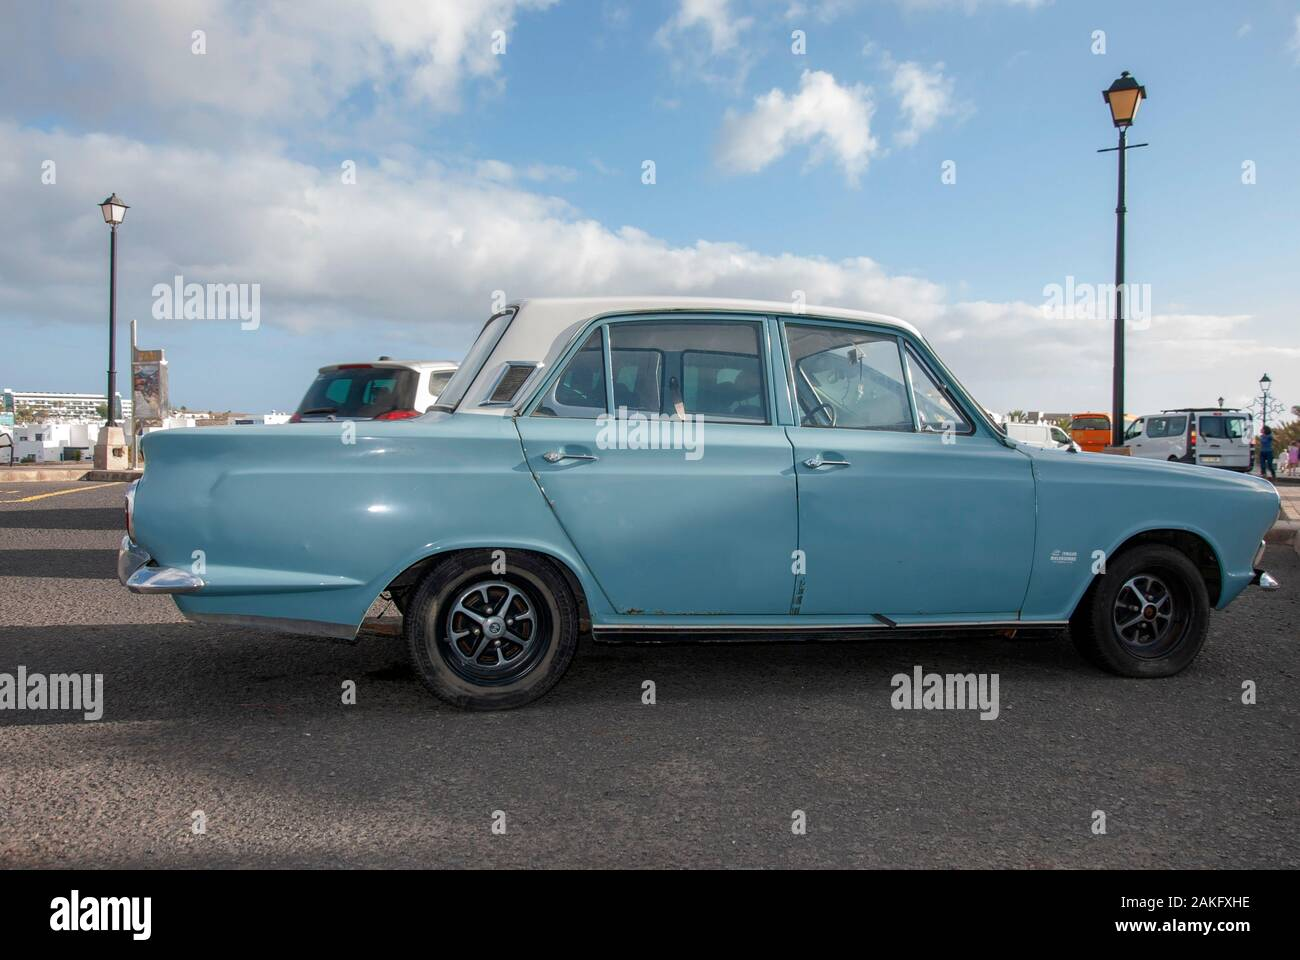 1960's Model Light Blue White Mark One Ford Cortina Motor Car right hand passengers side view of rusty lhd left hand drive four door 4 door ford corti Stock Photo